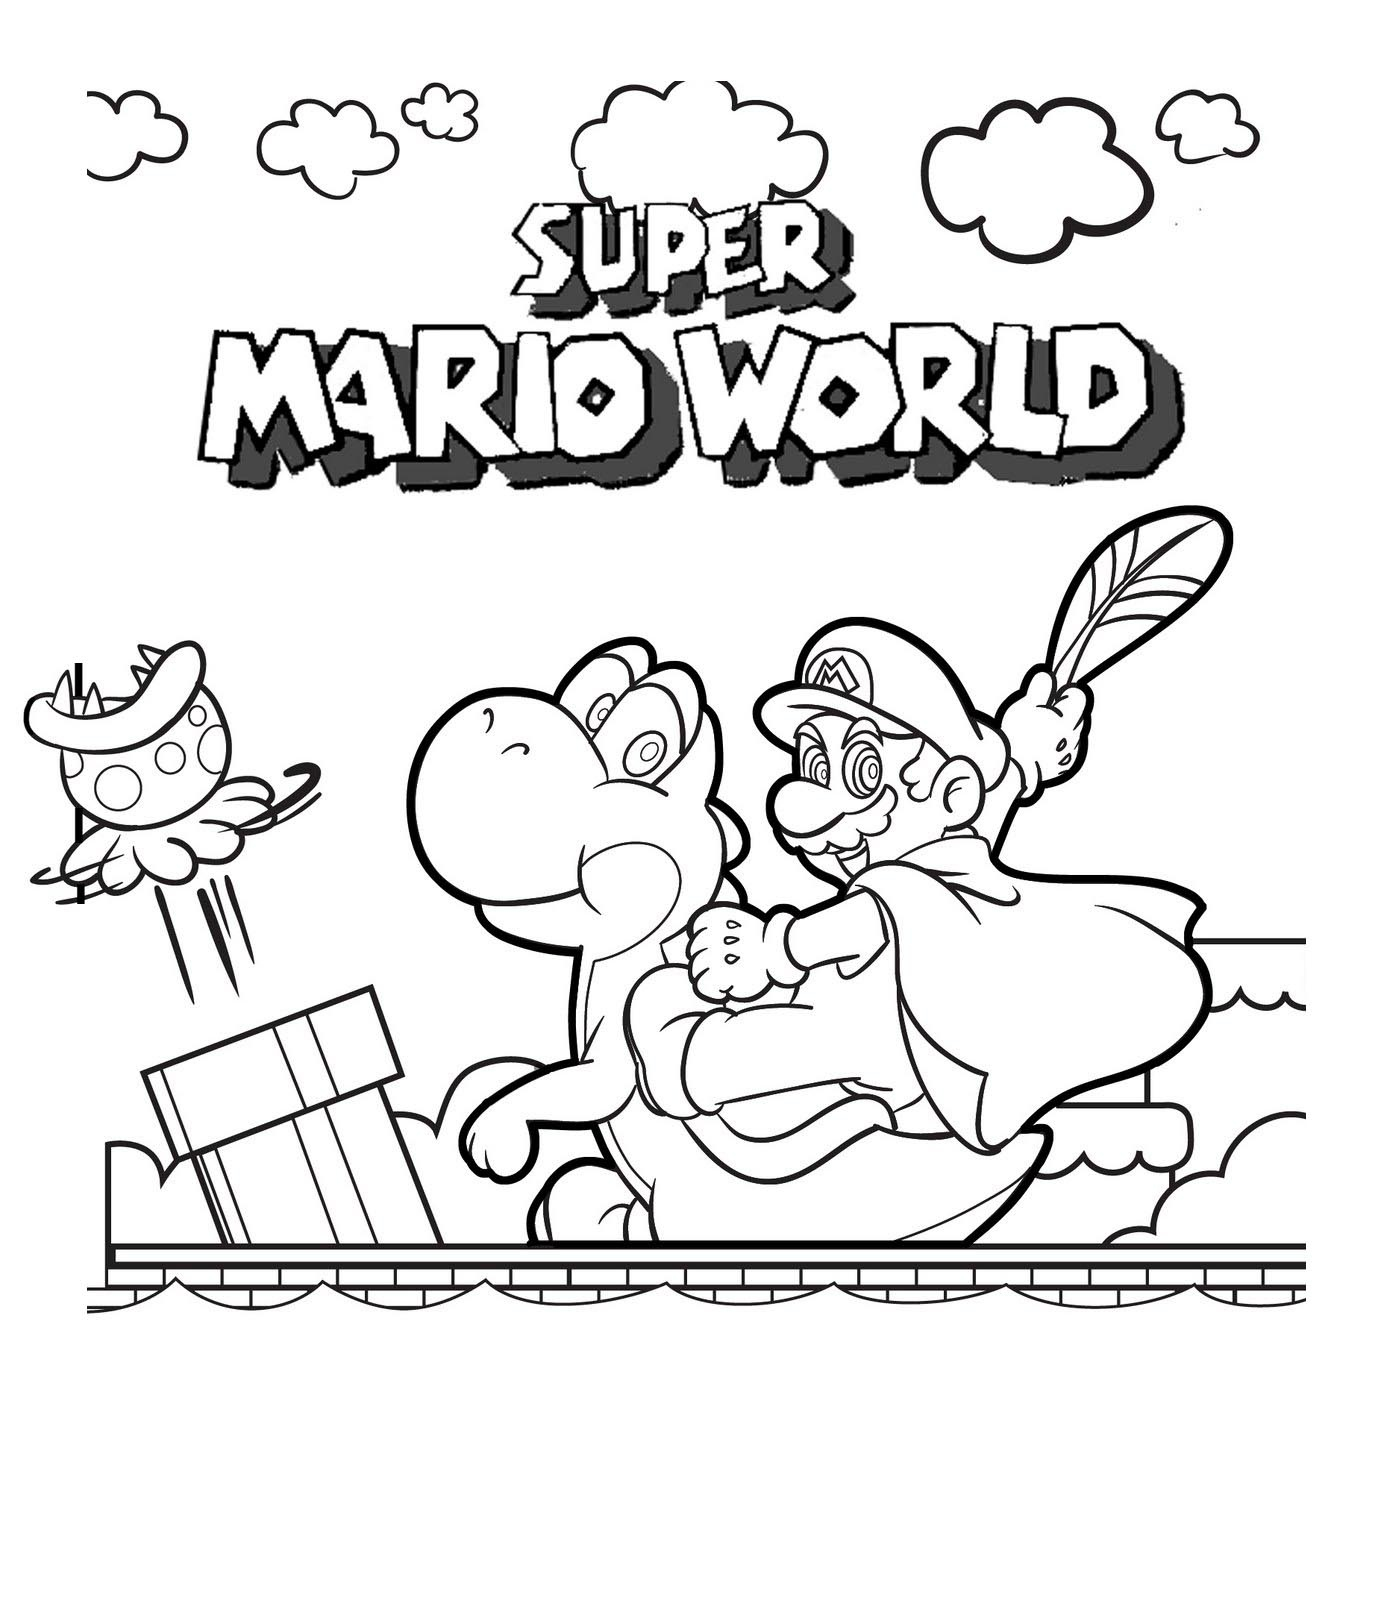 Free Printable Mario Coloring Pages For Kids - Mario Coloring Pages Free Printable